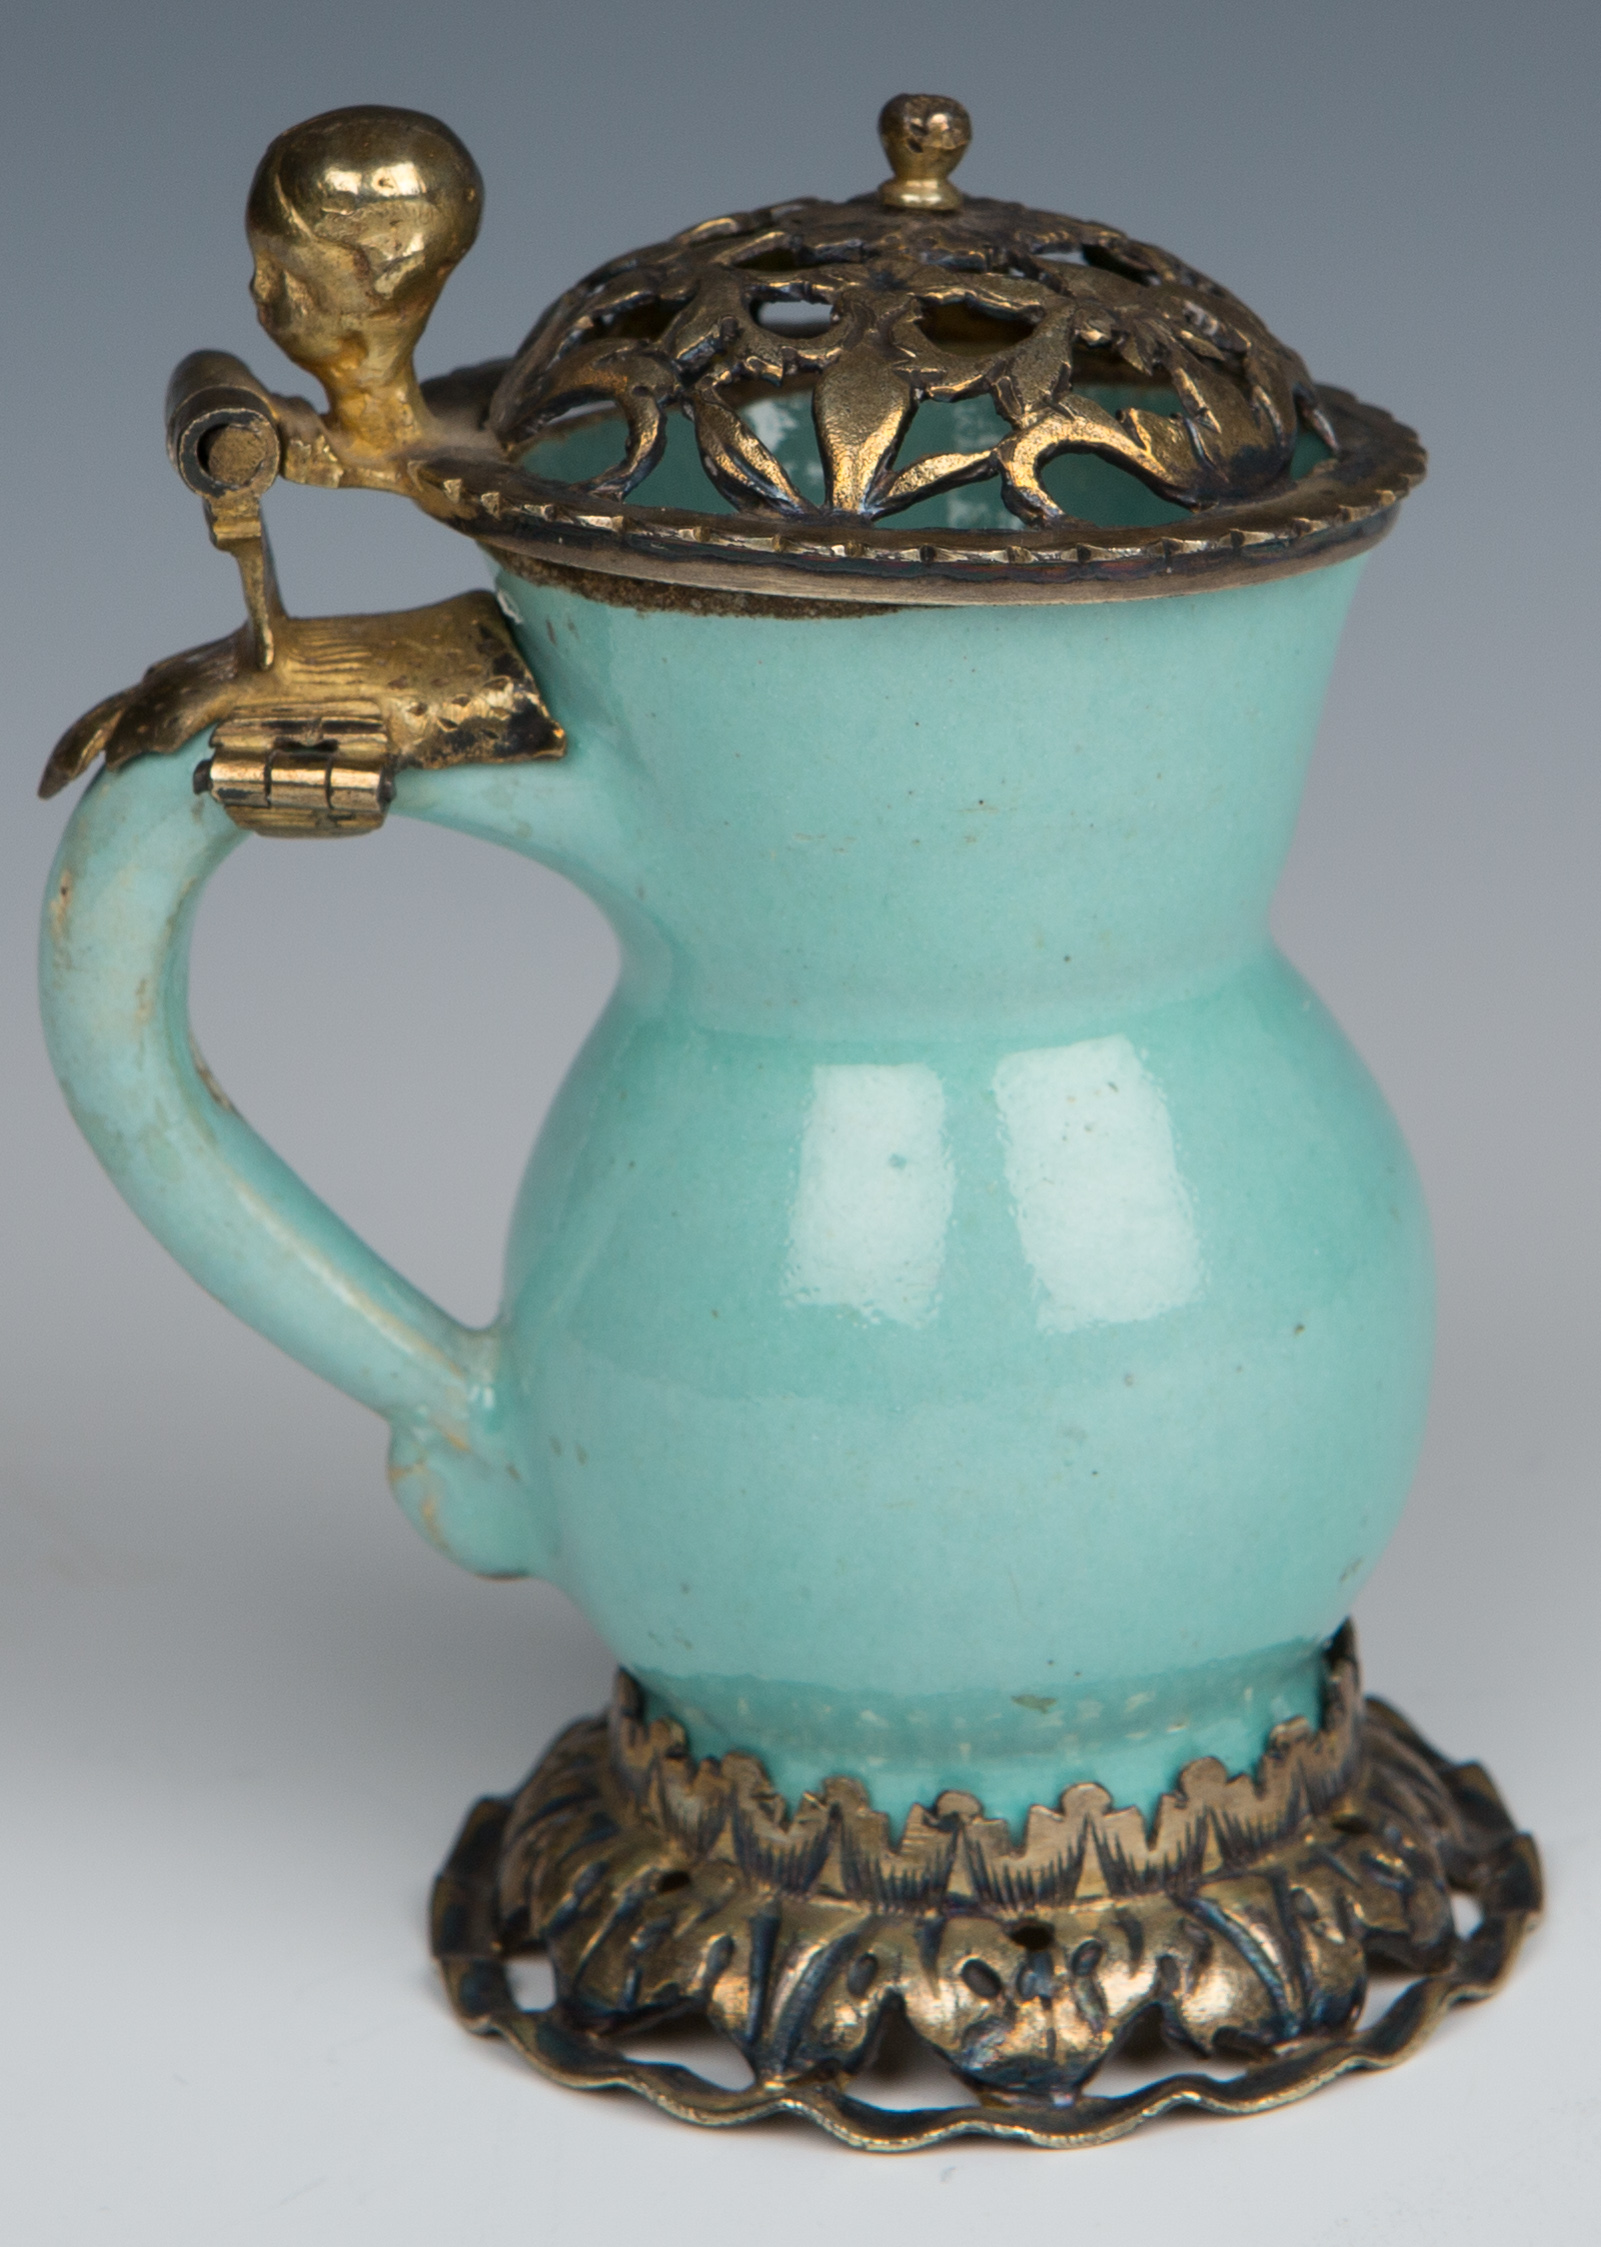 A small silver-gilt-mounted tin-glazed earthenware tankard, circa 1660/80.